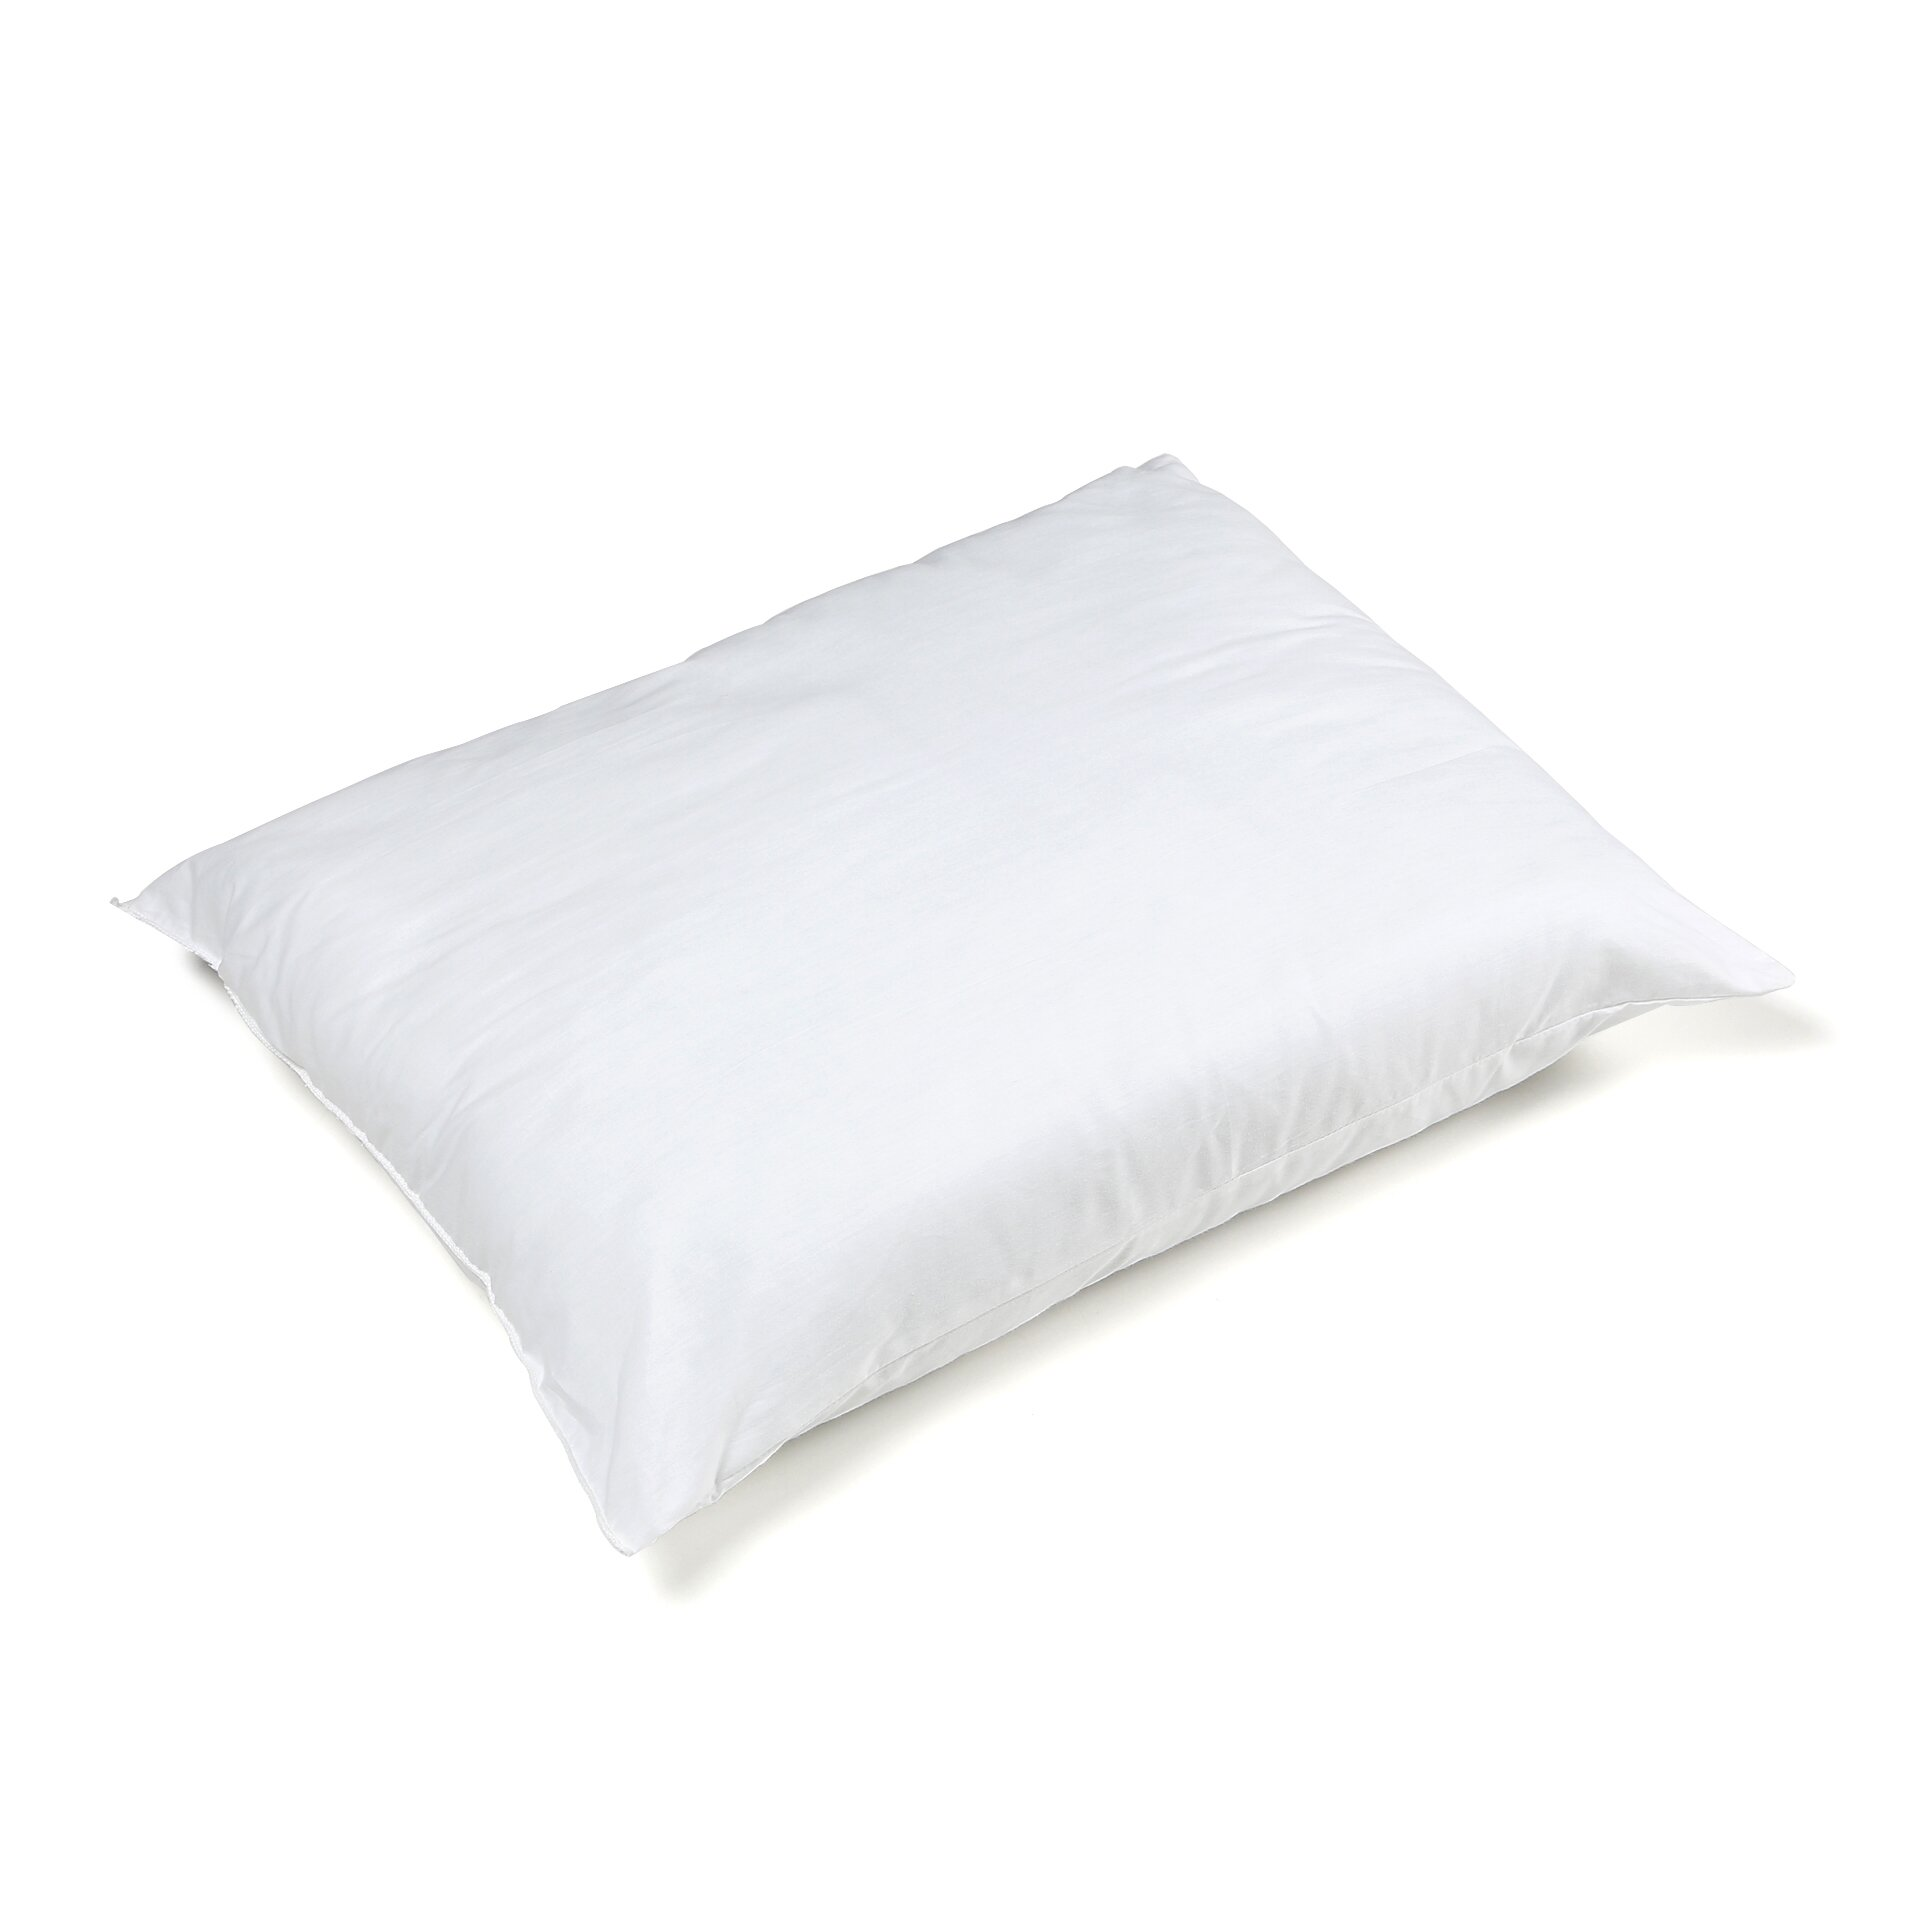 Serta serta perfect sleeper polyester standard bed pillow for Bed pillows reviews